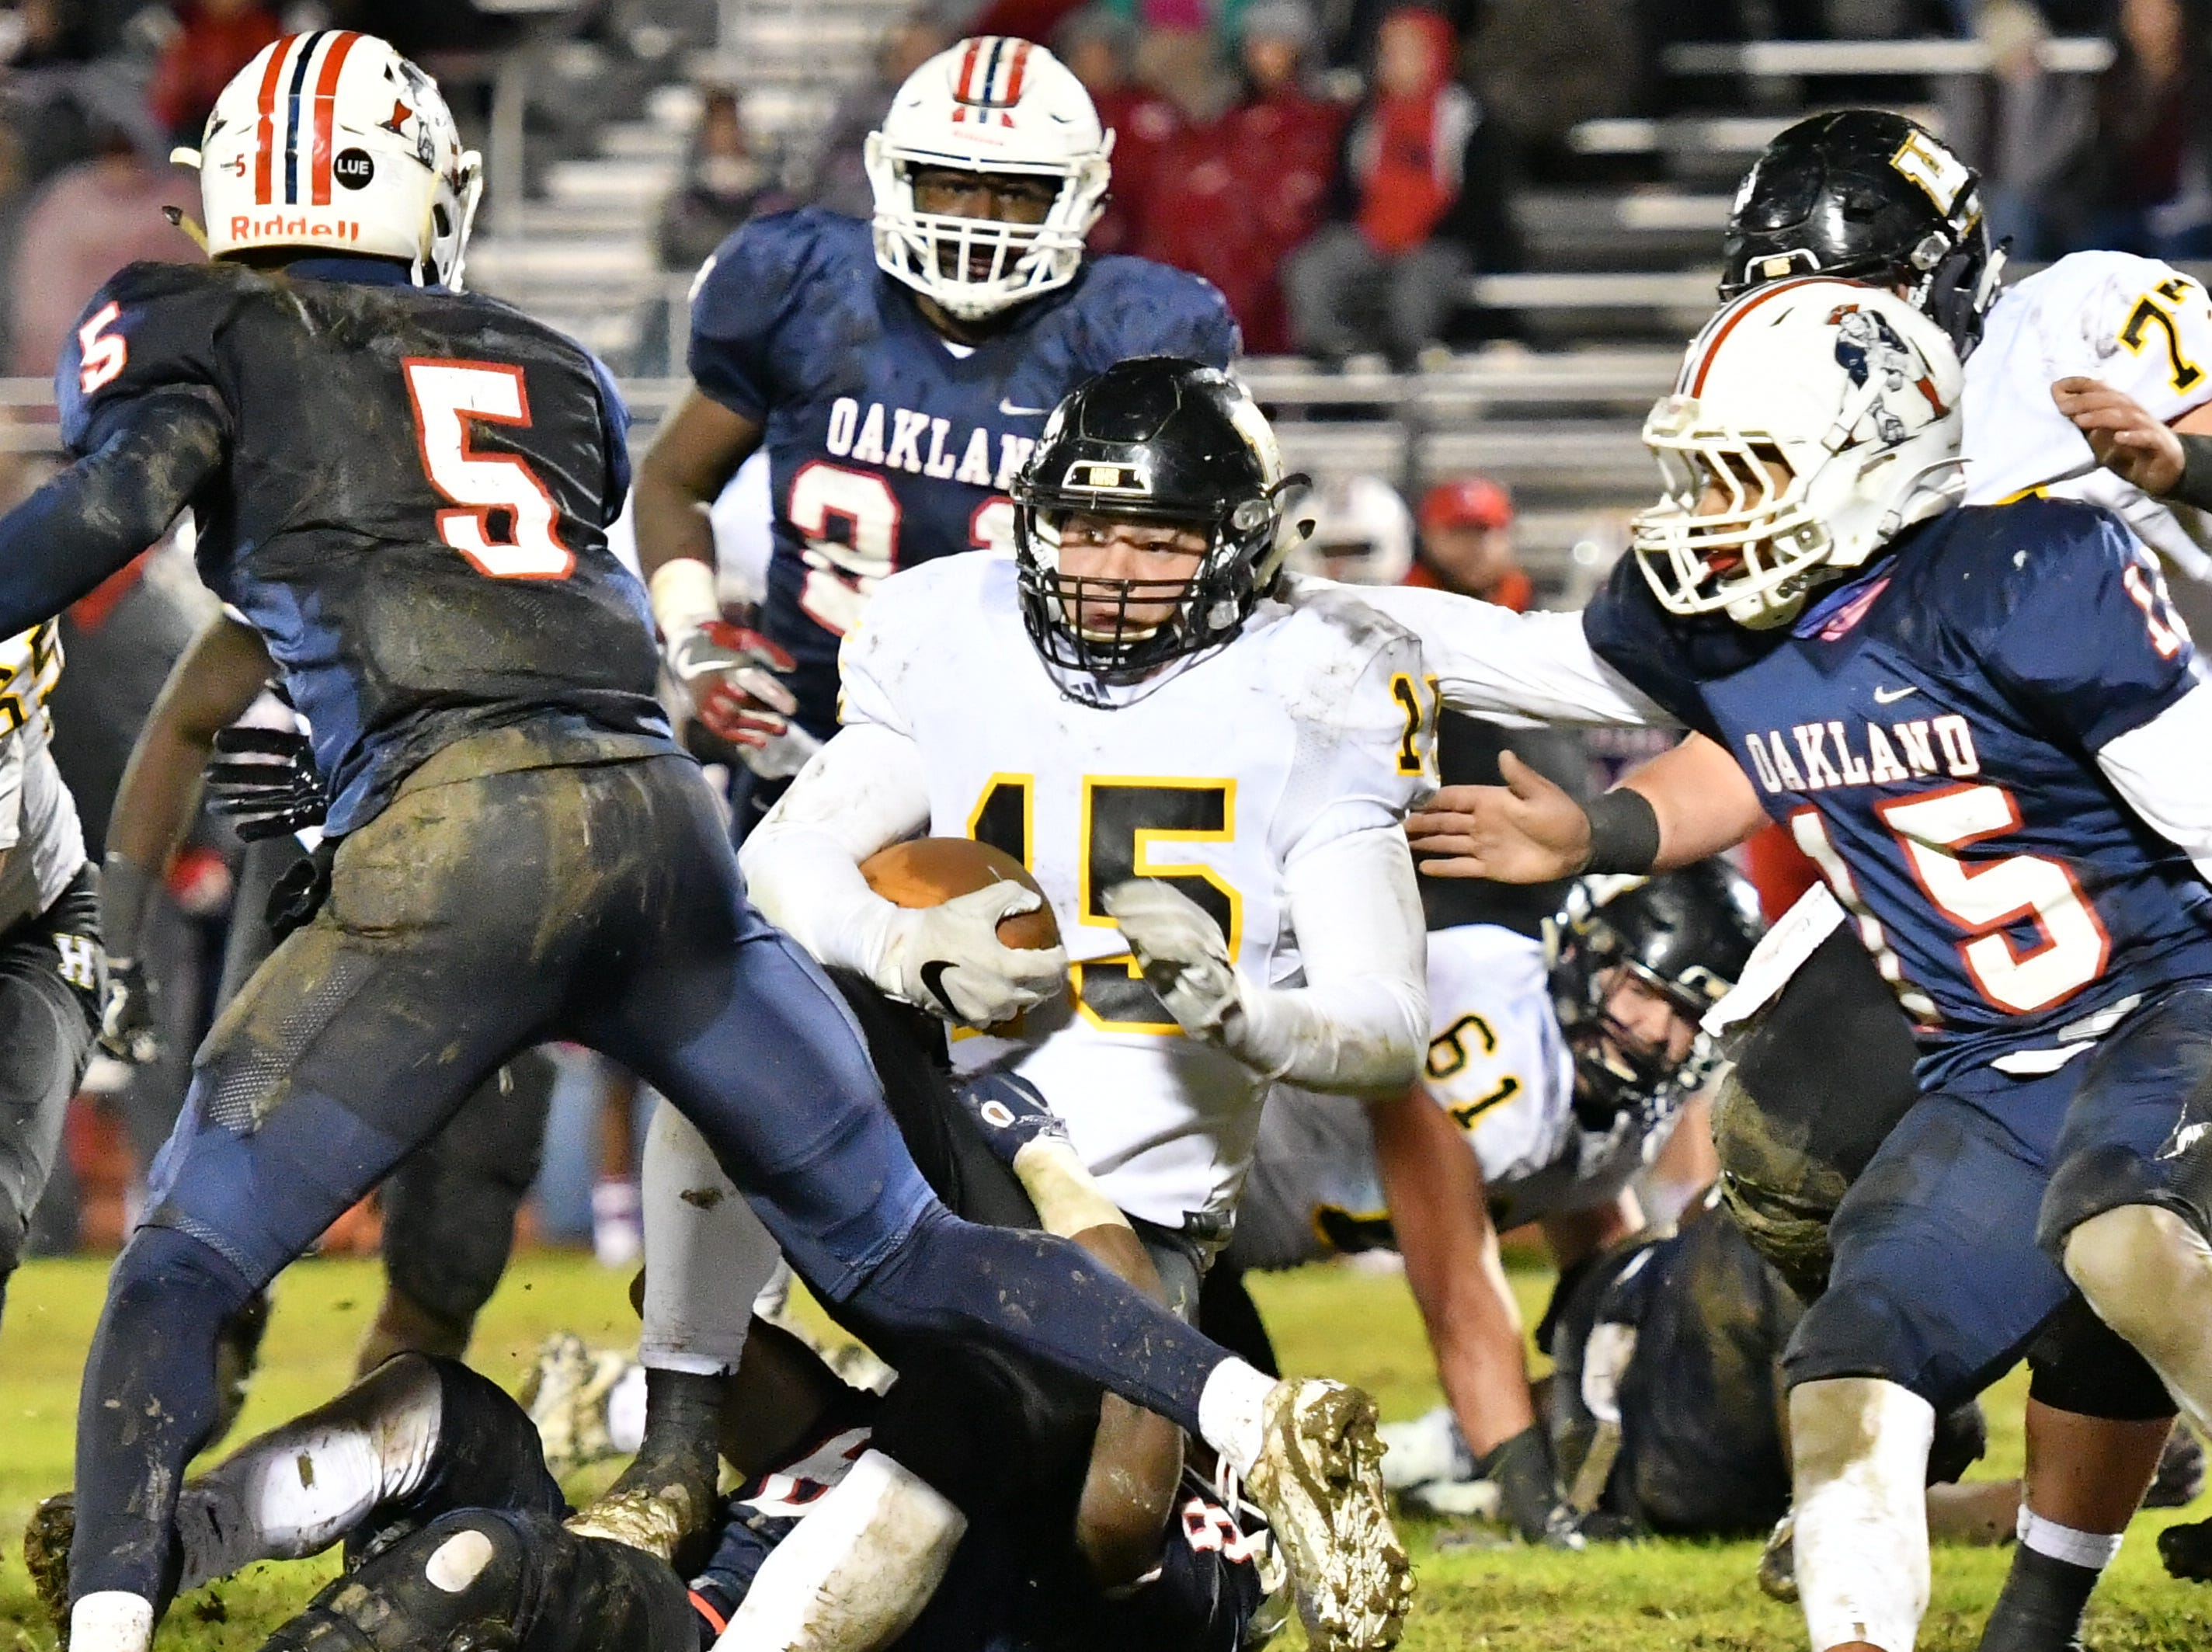 Hendersonville's Dalton Jones is brought down by the Oakland defense Friday night.